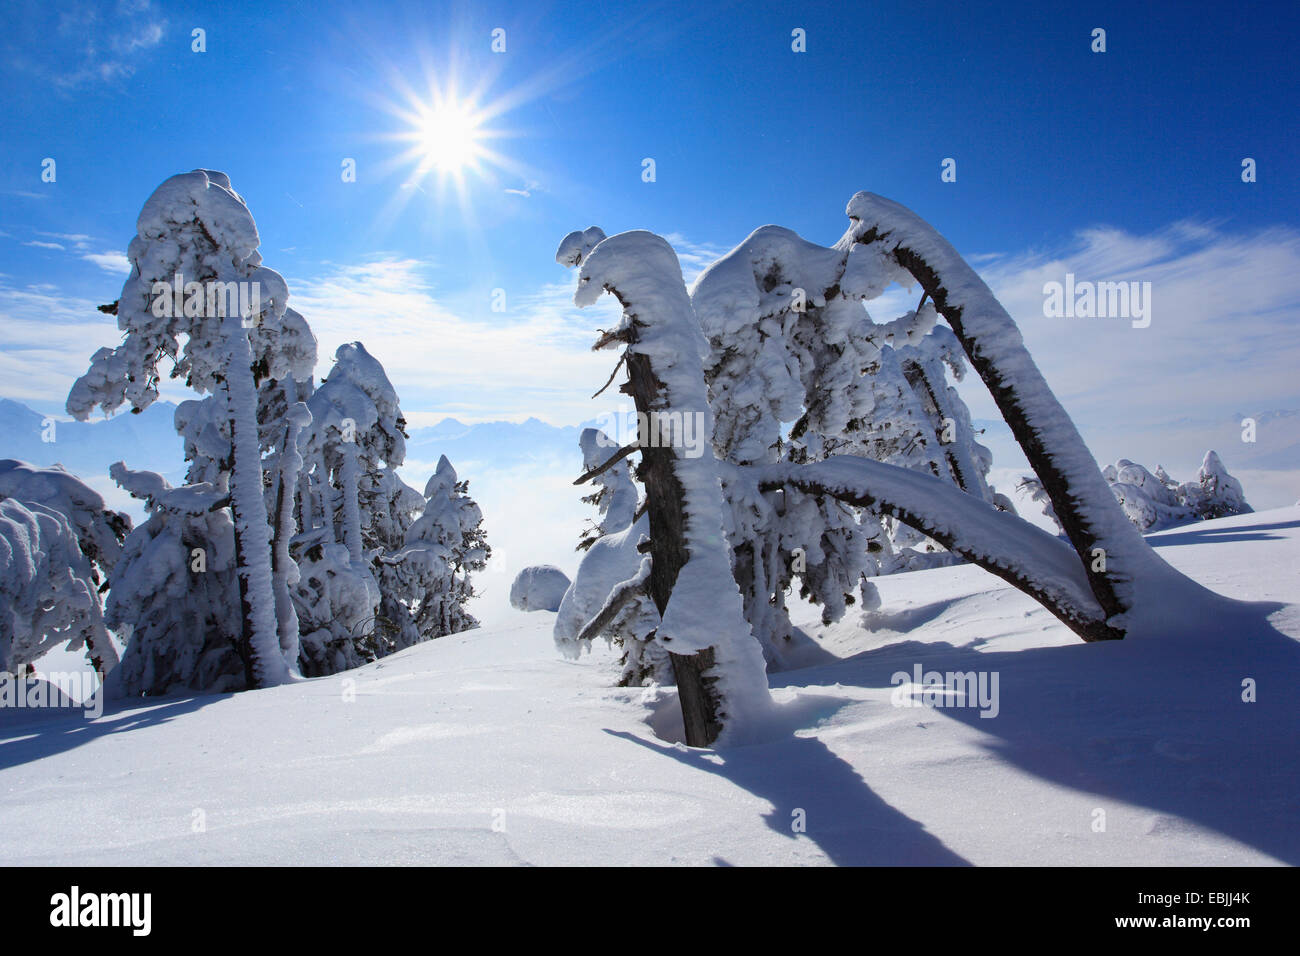 Norway spruce (Picea abies), snowcovered conifers at Niederhorn, Switzerland, Bernese Oberland - Stock Image